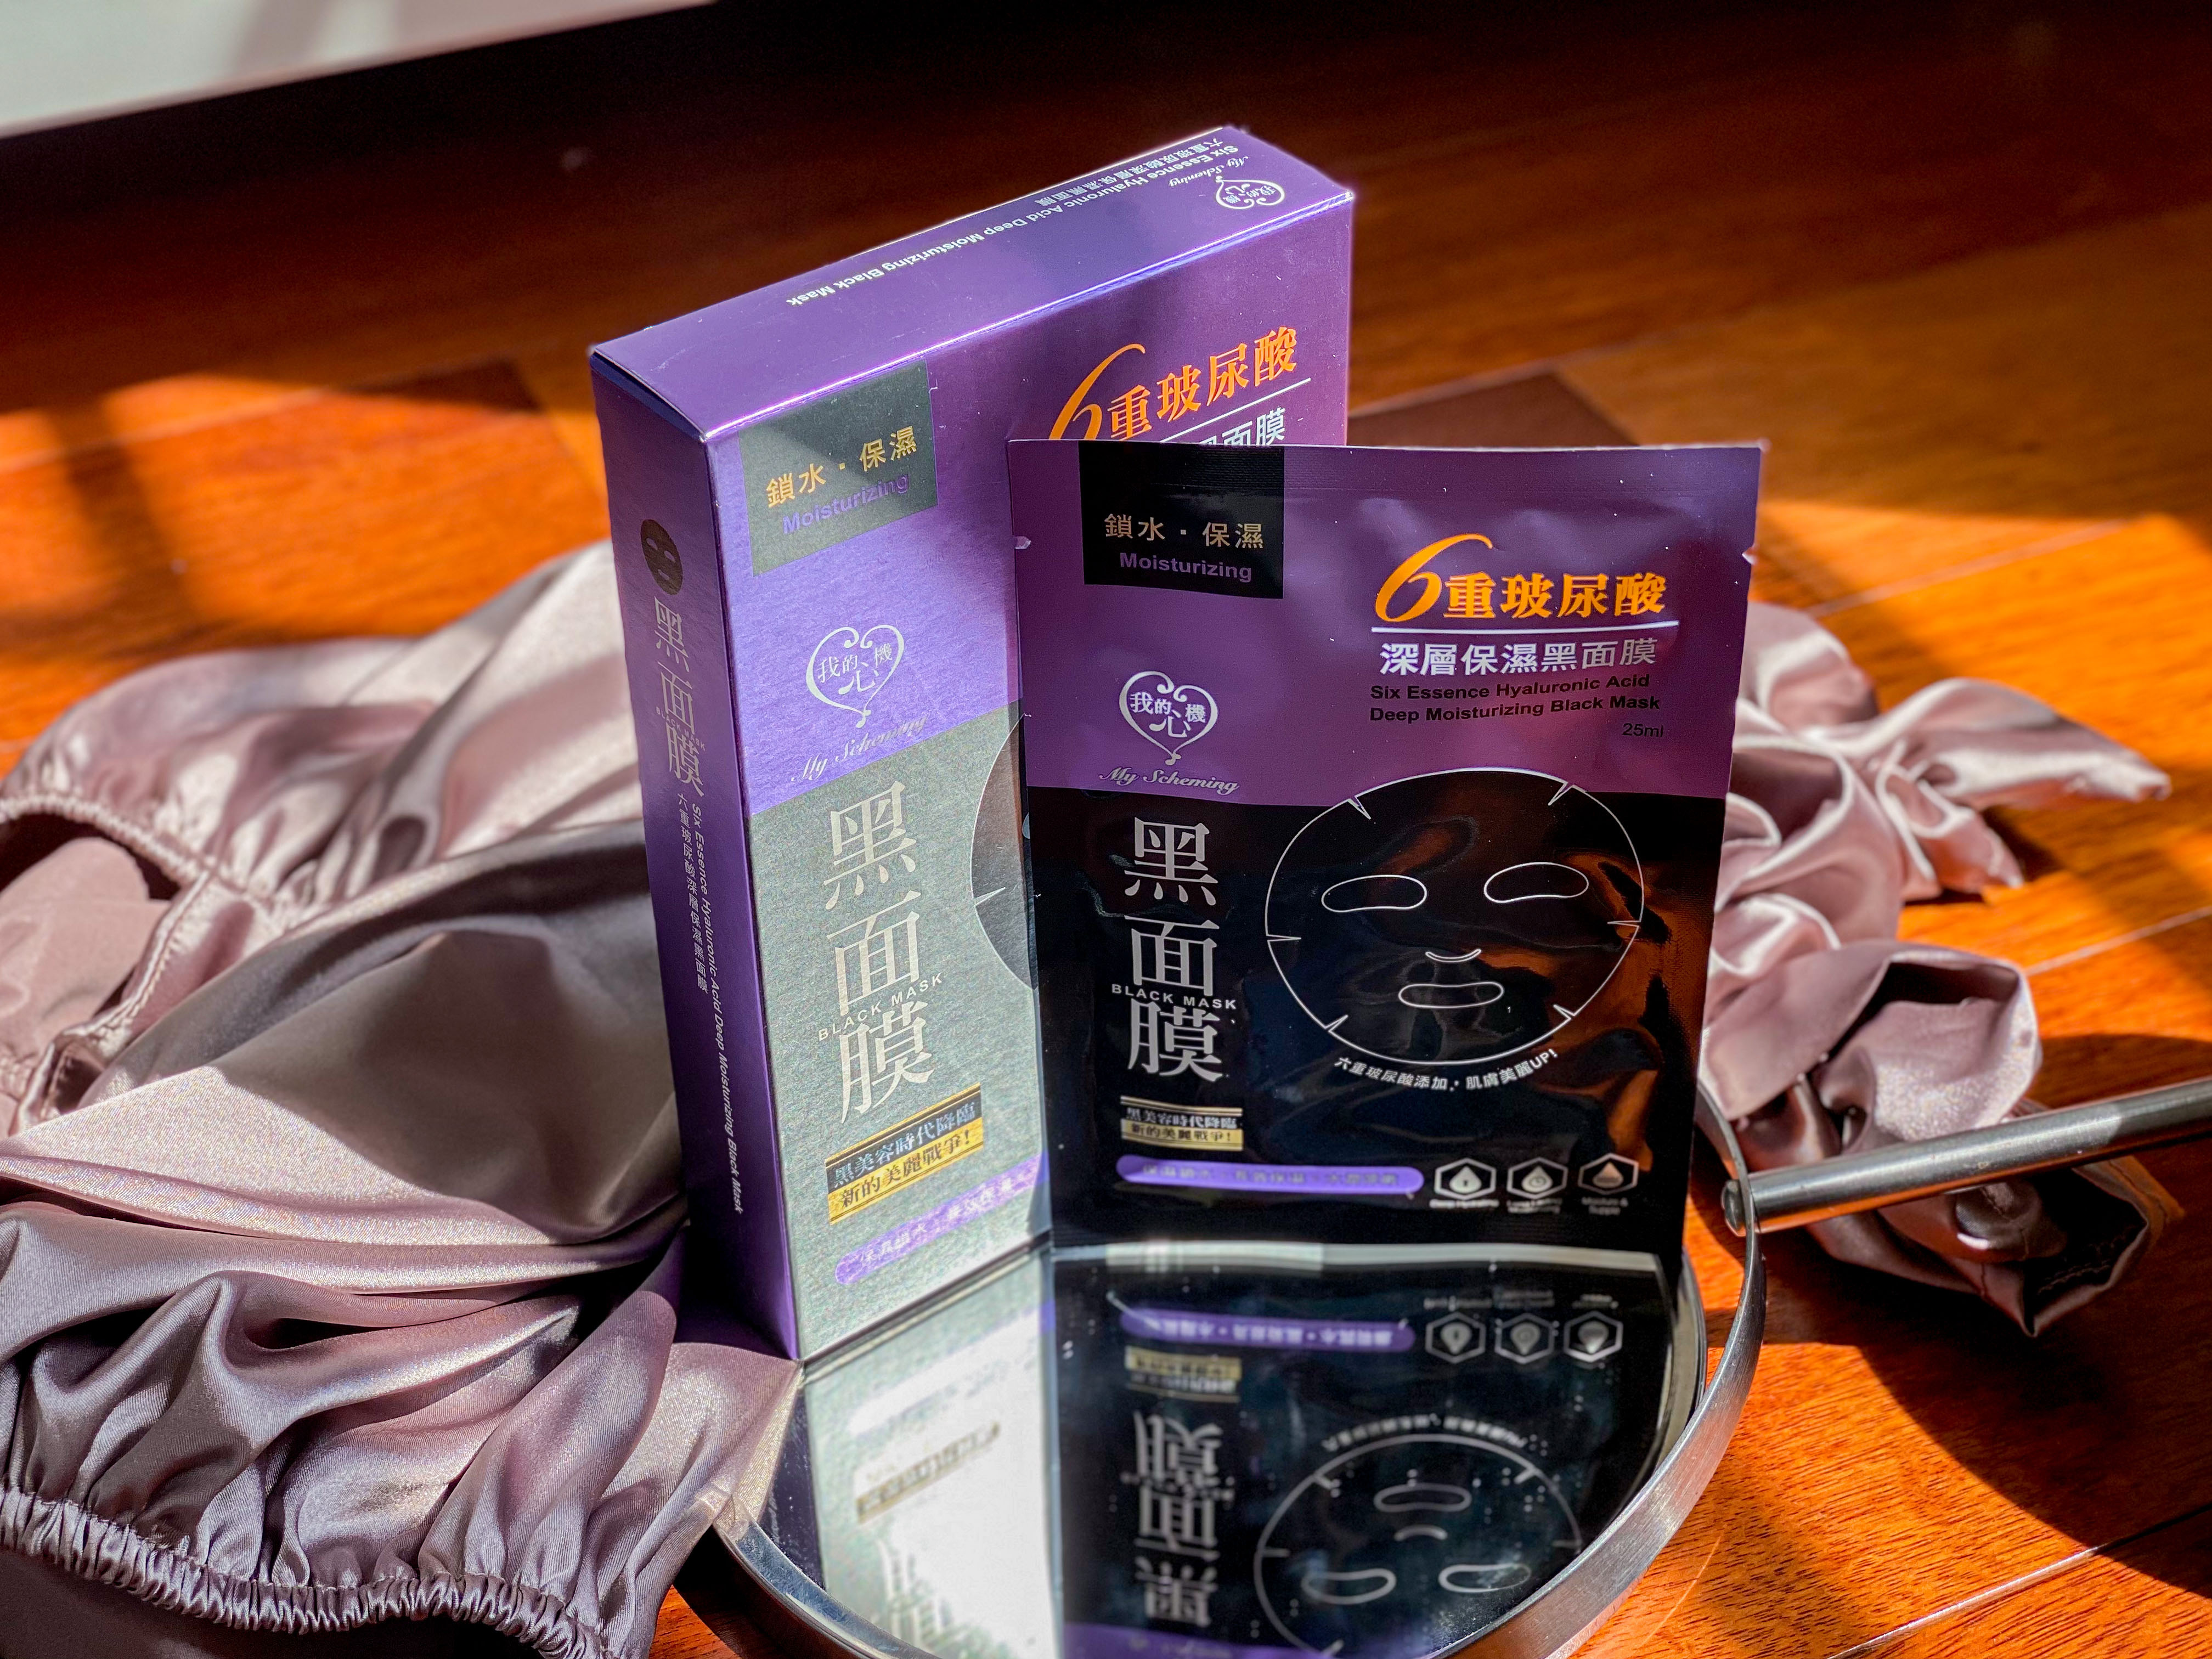 REVIEW | My Scheming Six Essence Hyaluronic Acid Black Mask